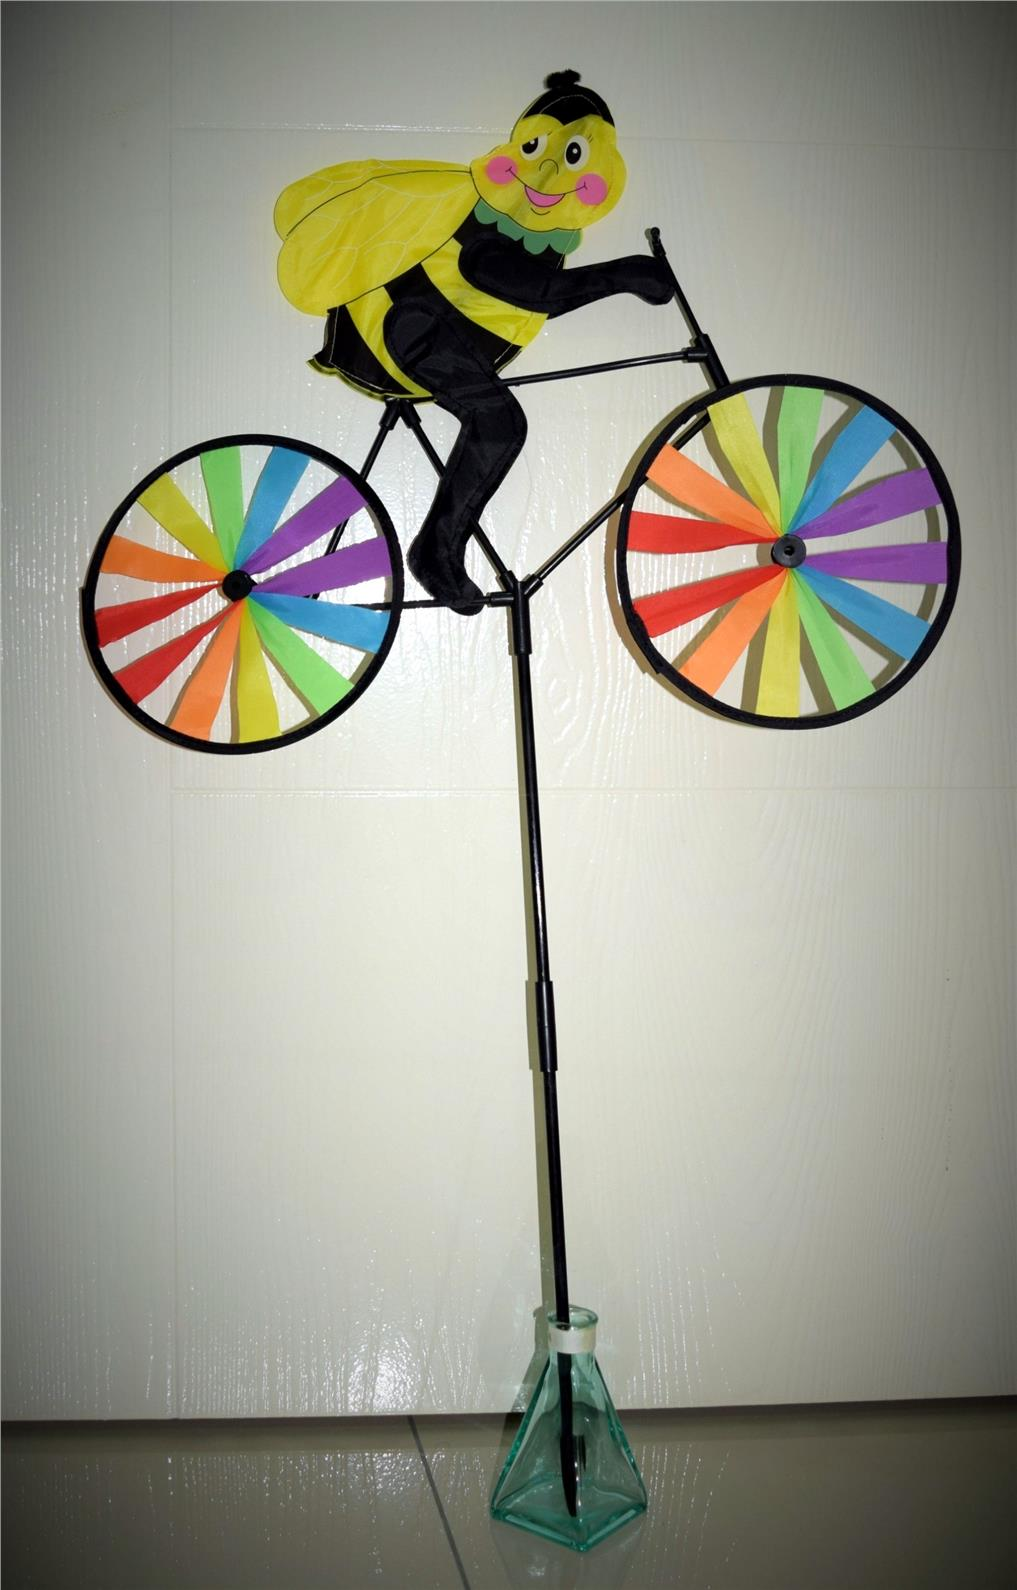 Pinwheel - Bee Riding Bicycle